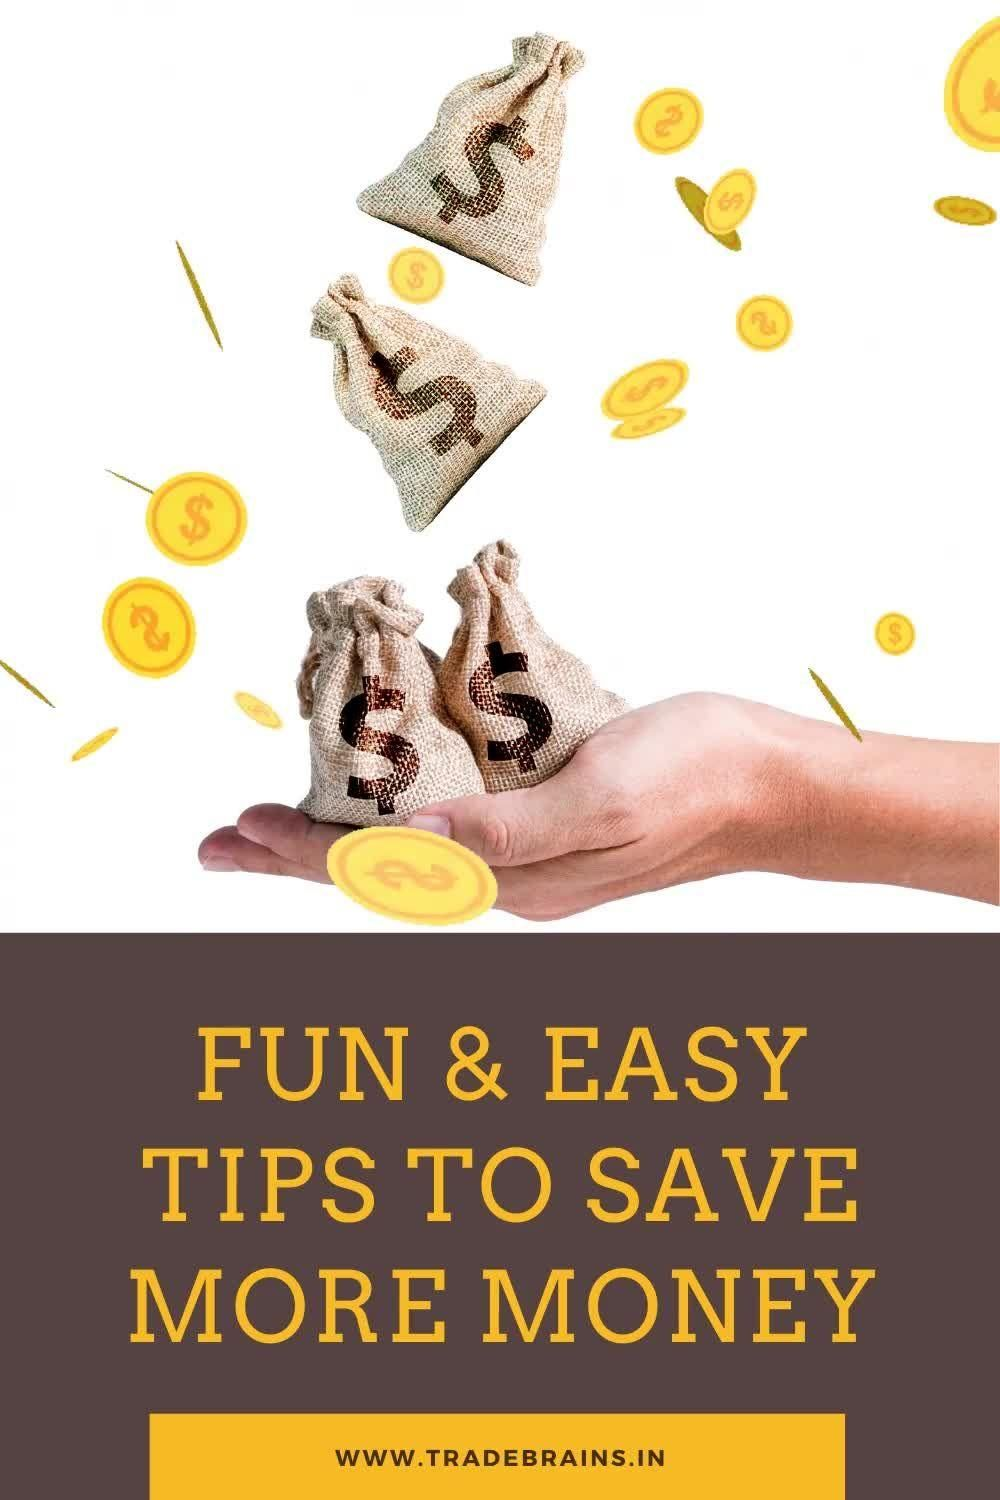 Money saving tips- 7 fun and easy tips to save more money